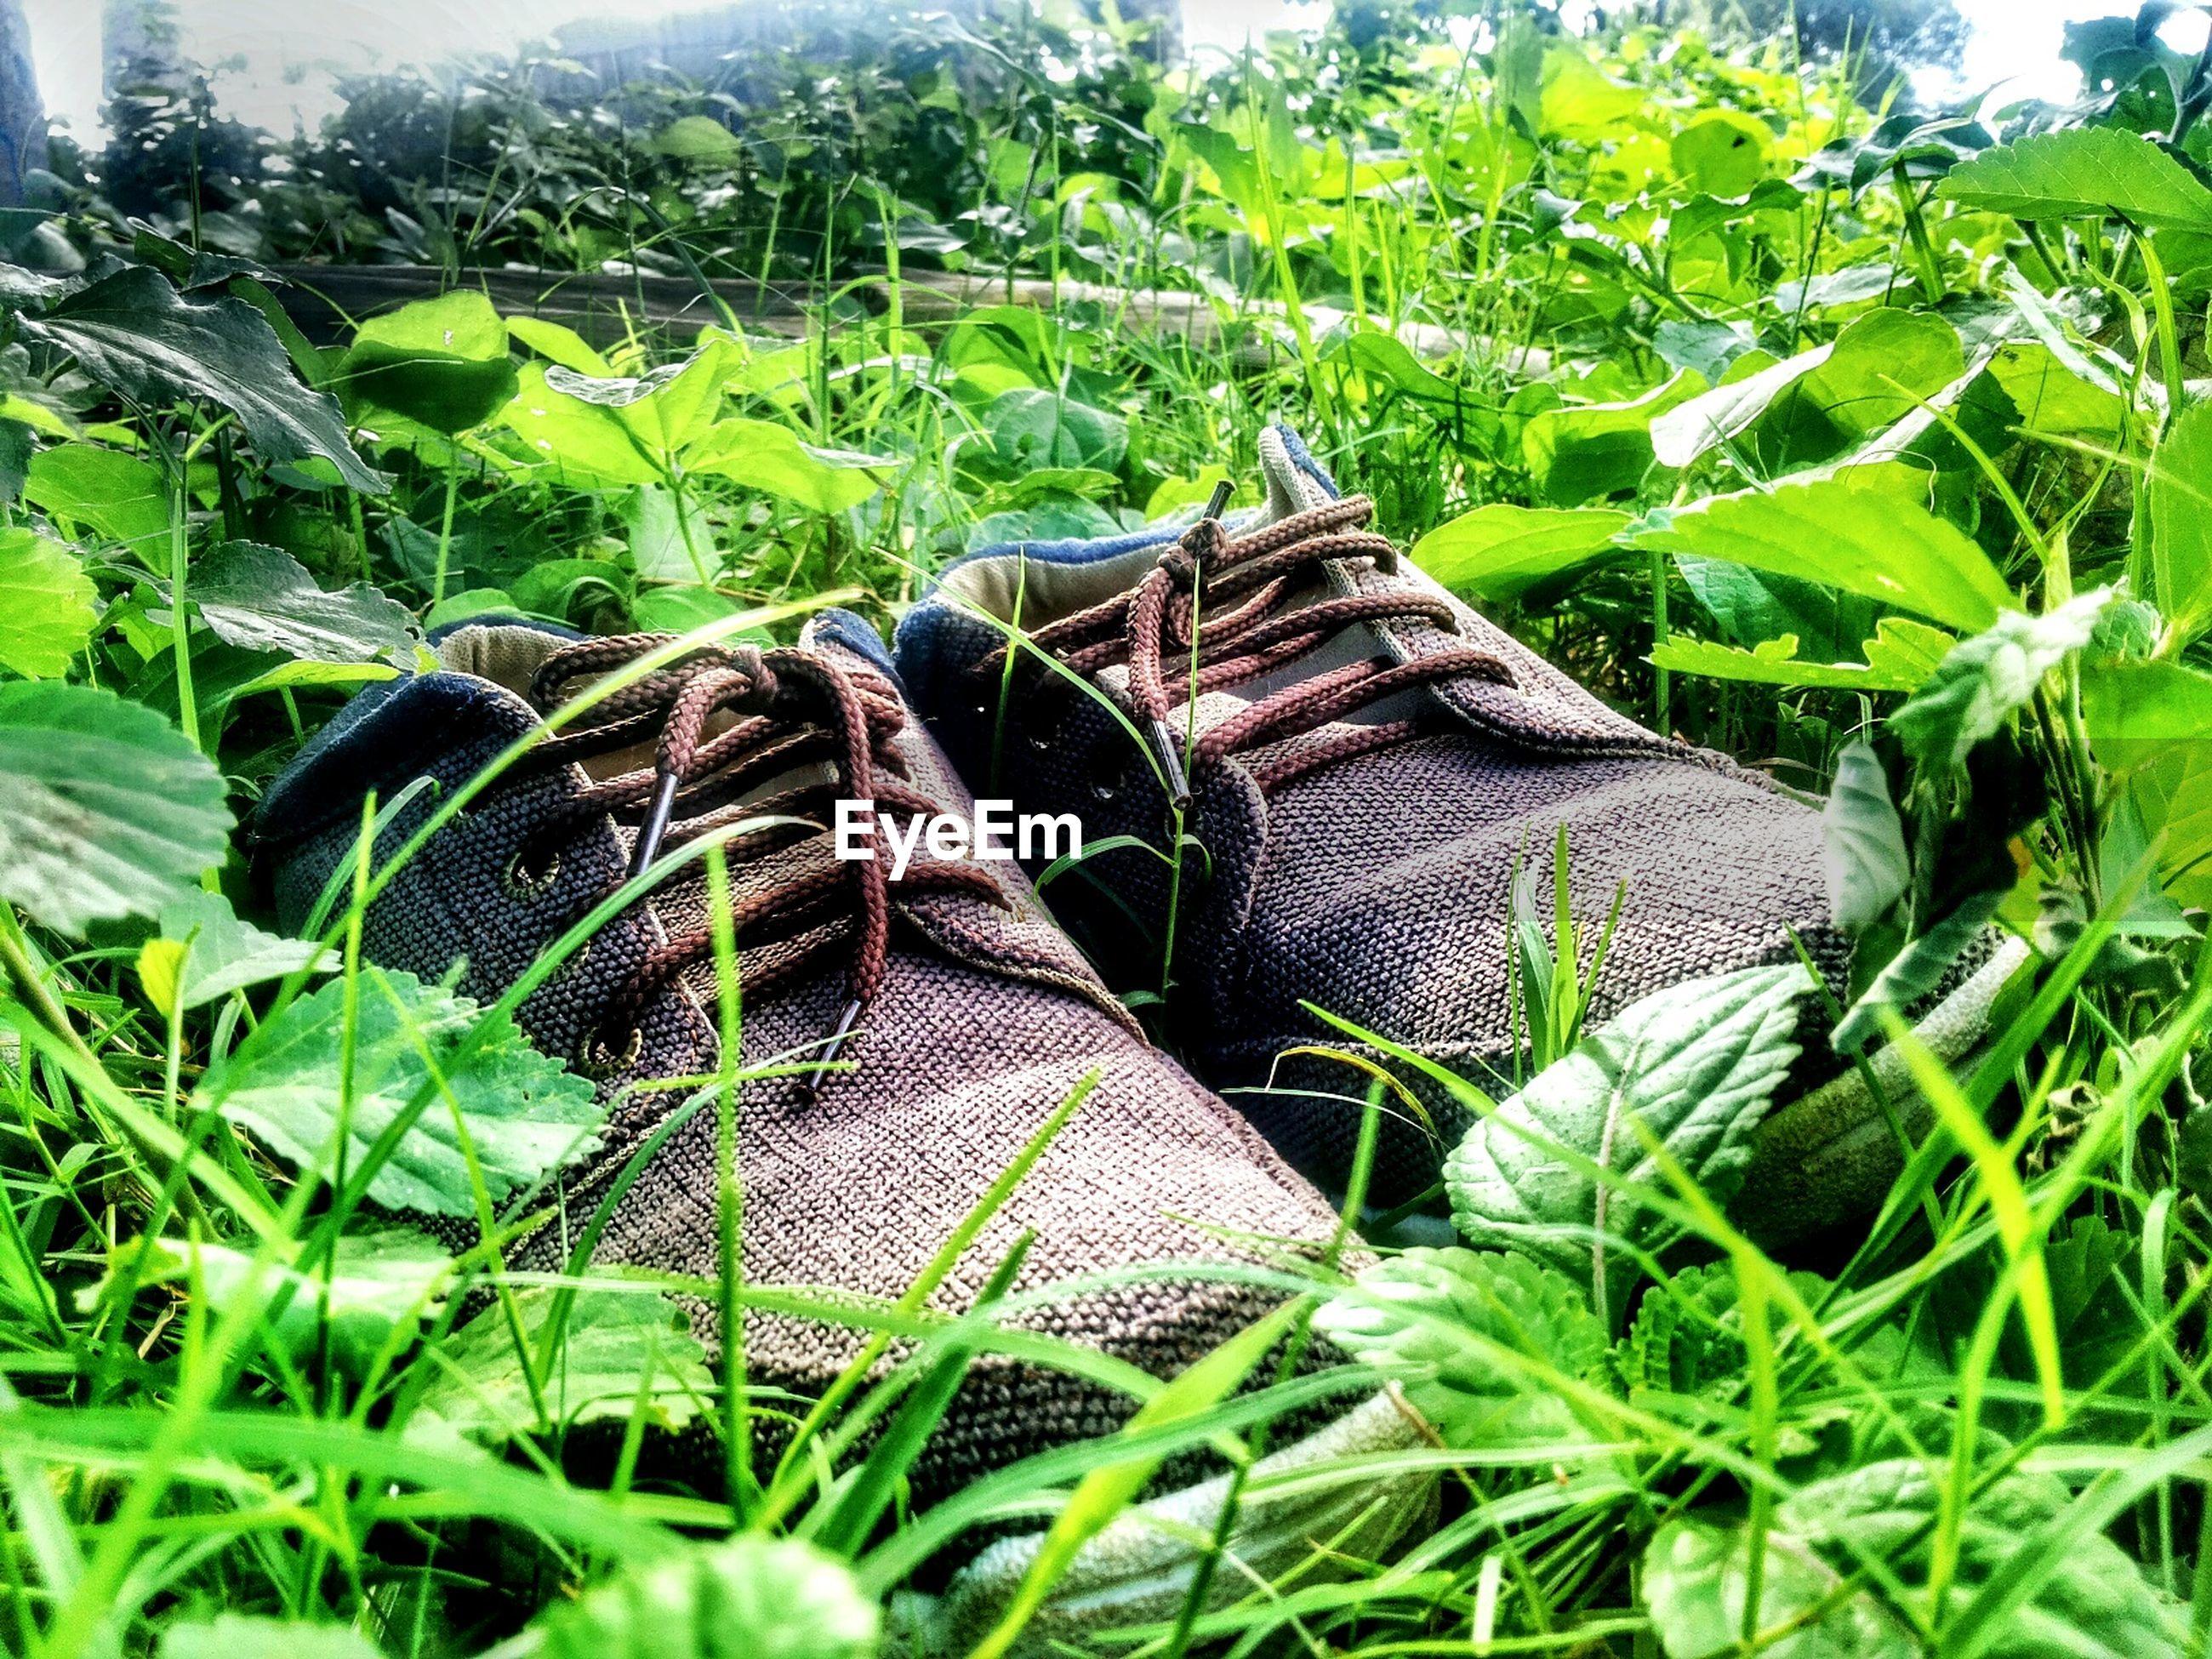 Pair of shoes on grassy field